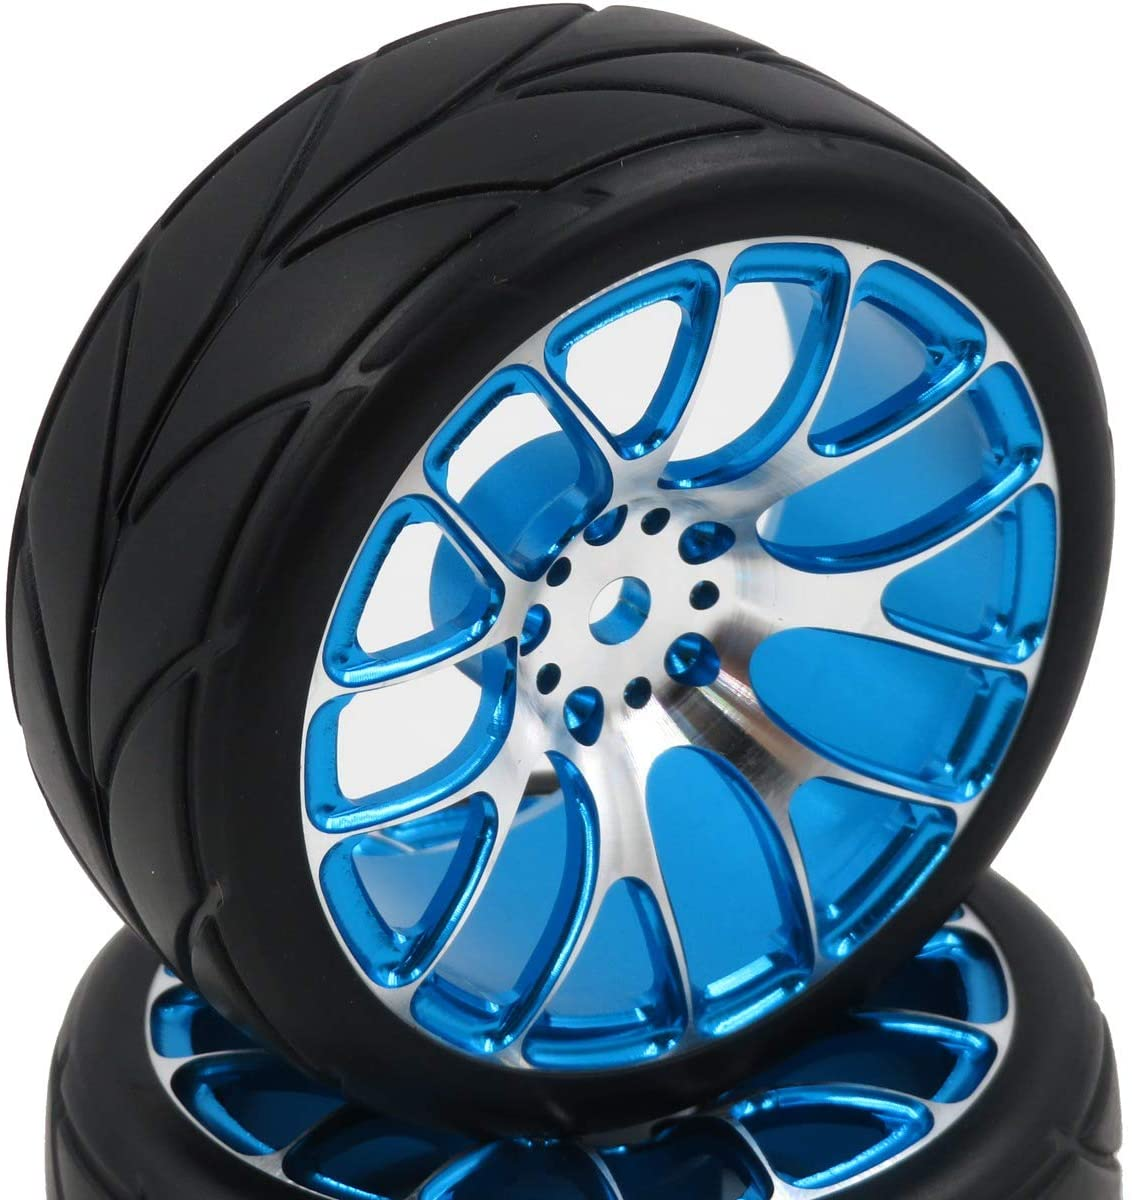 Aluminum alloy wheels with tyres